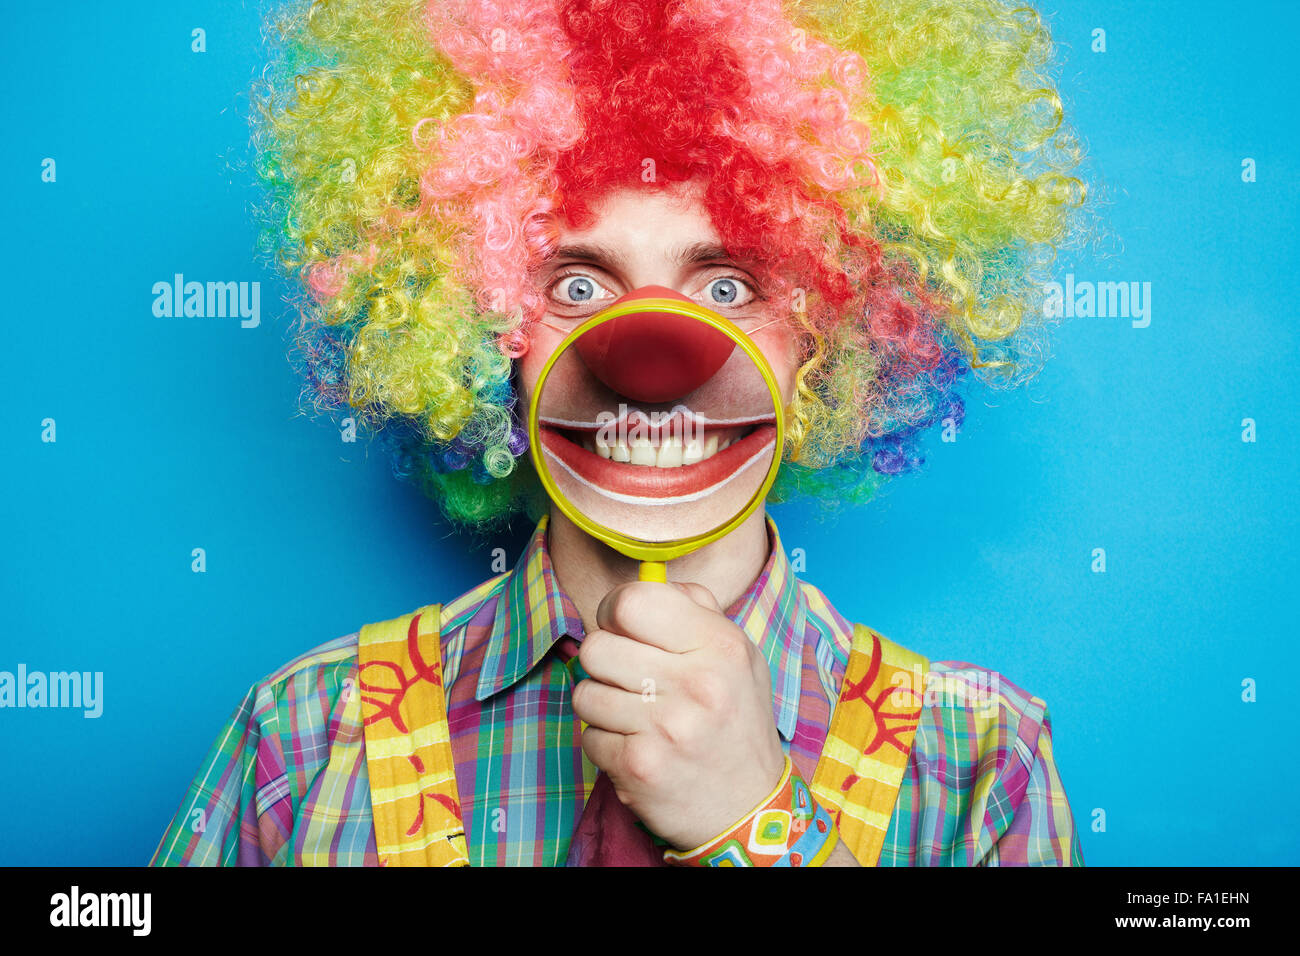 Portrait cheerful clown with the big smile on a blue background - Stock Image